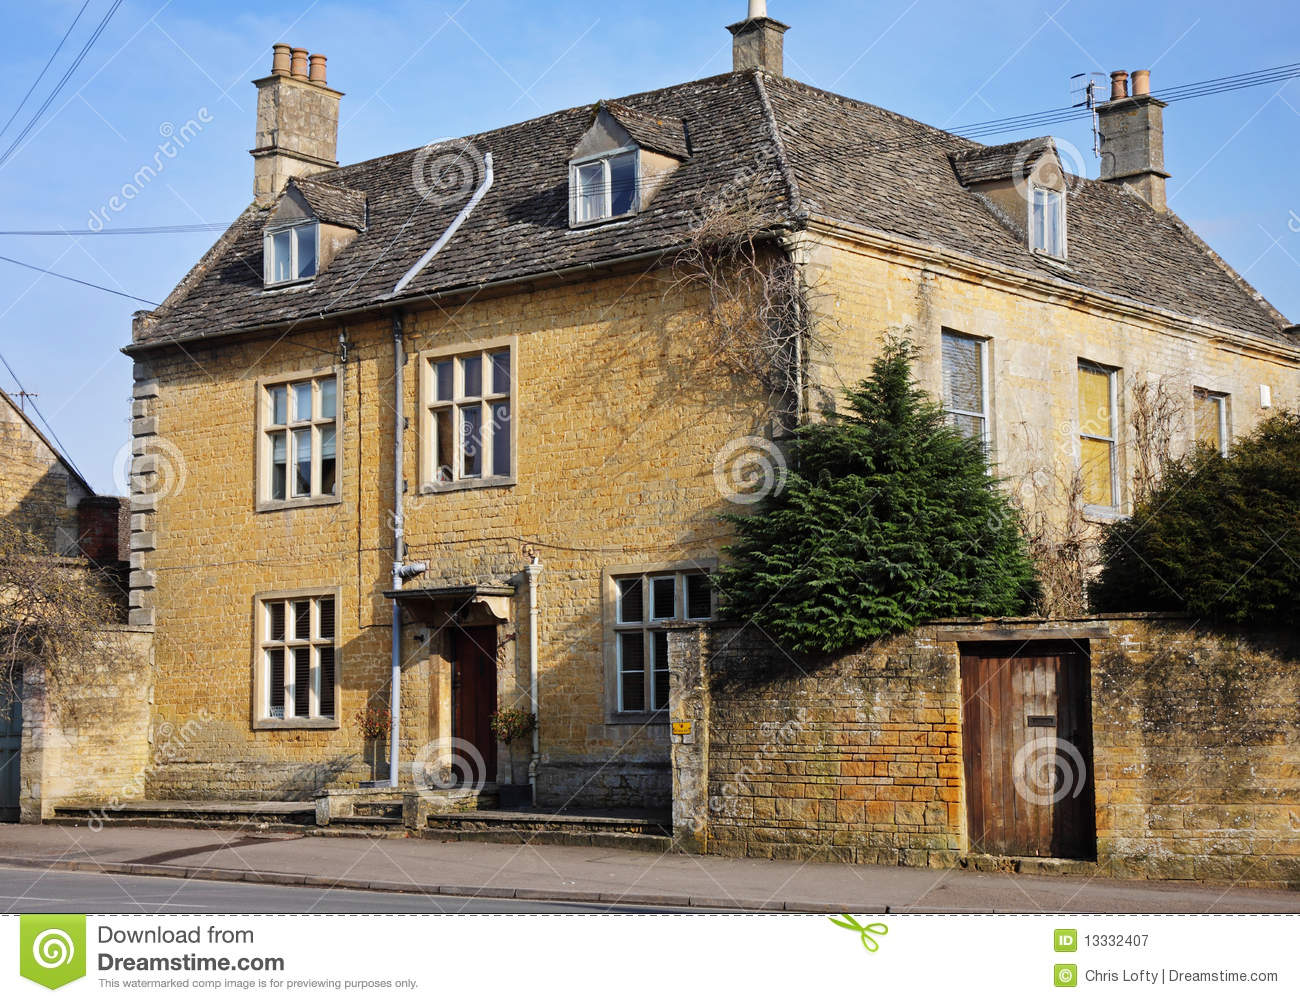 Cotswold stone village houses stock image image of for Architecture design for home in village